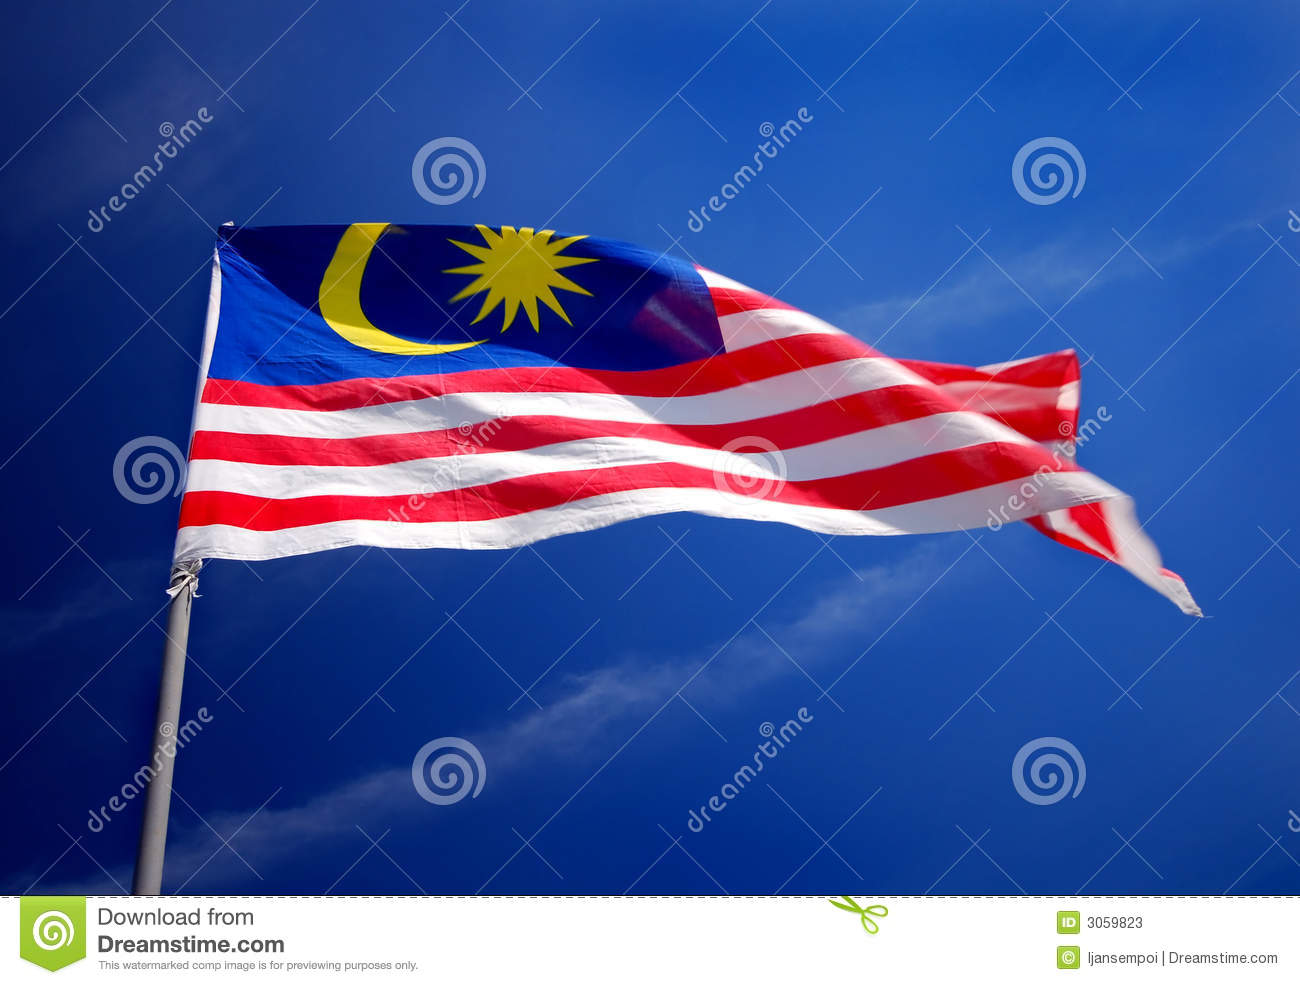 patriotism in malaysia Patriotism in malaysia for only $1390/page order now the compulsory national service training 'programme is intended to foster the spirit of patriotism, encourage racial integration, and develop positive and noble traits among the younger generation' (malaysiakini 13/6/2003) the targeted group is our youth of about 18 years.